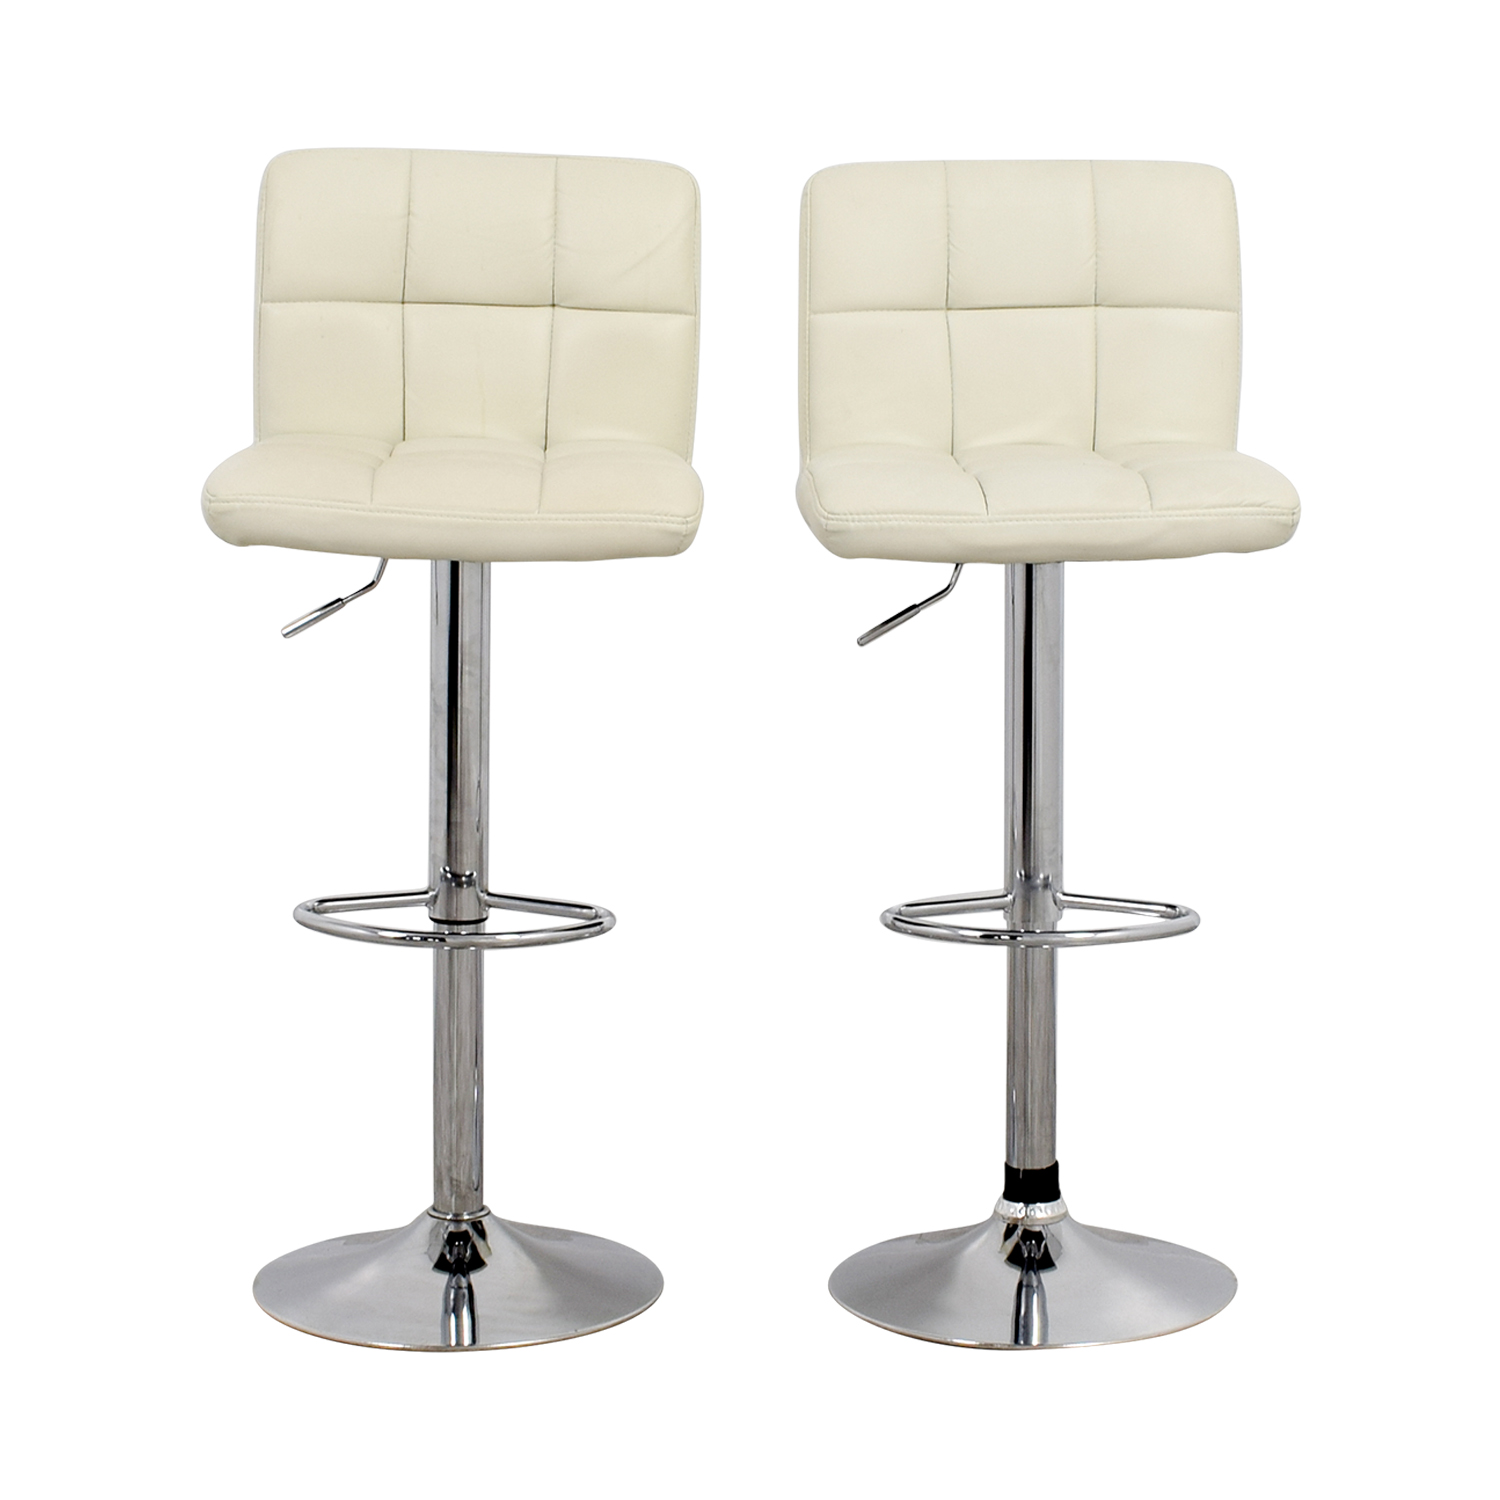 buy Creme and Chrome Tufted Bar Stools Chairs